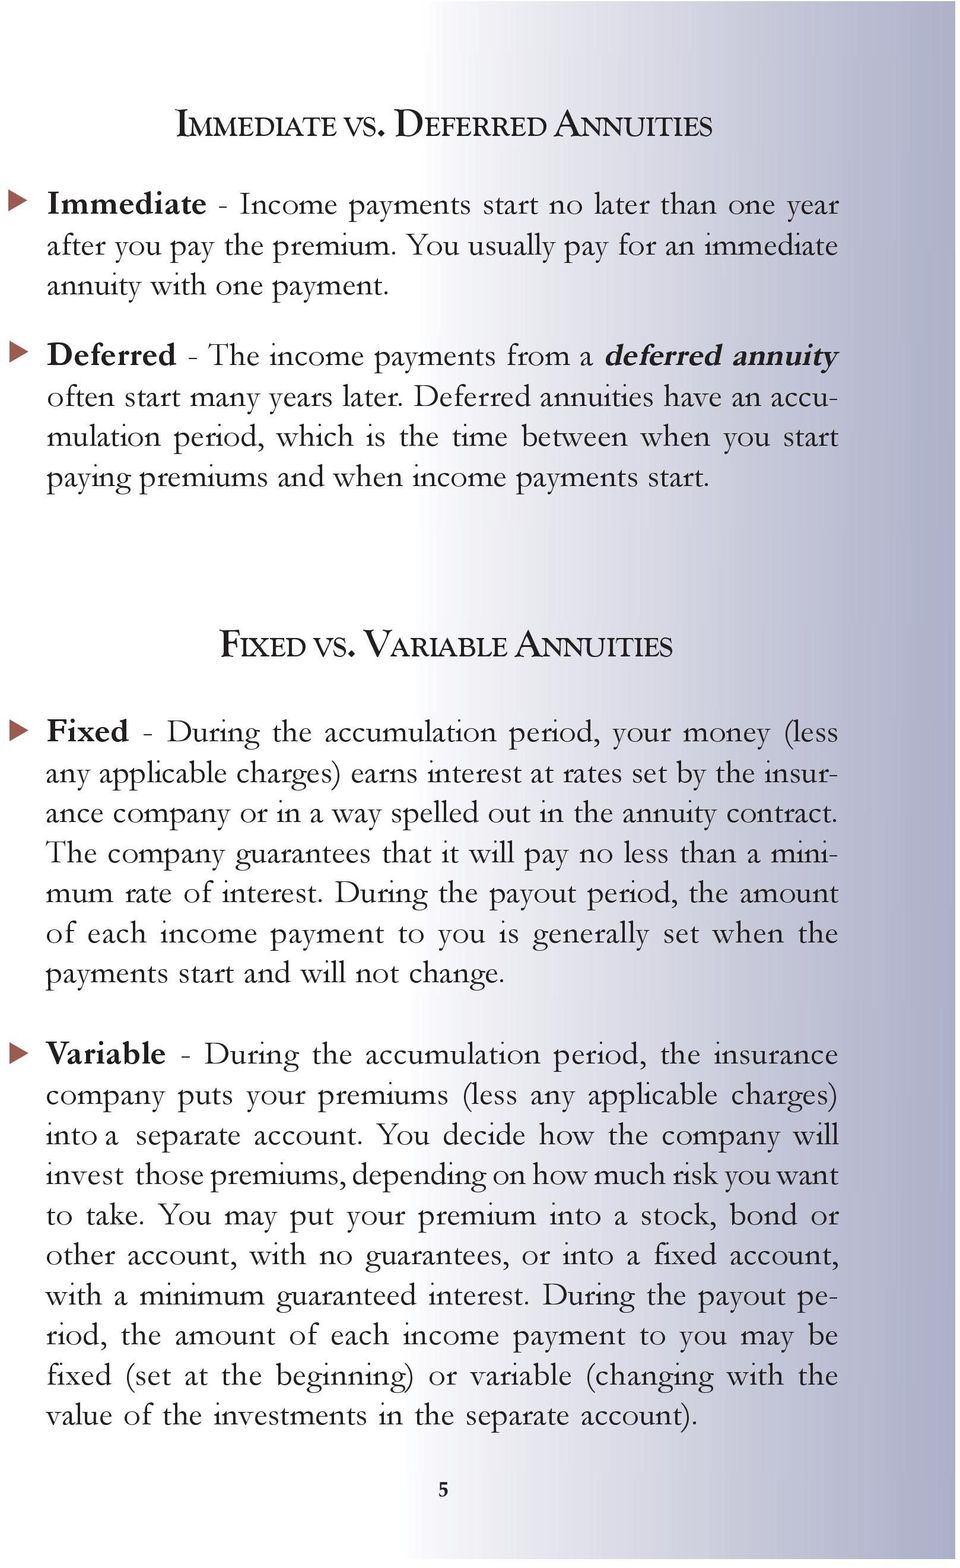 Deferred annuities have an accumulation period, which is the time between when you start paying premiums and when income payments start. FIXED VS.